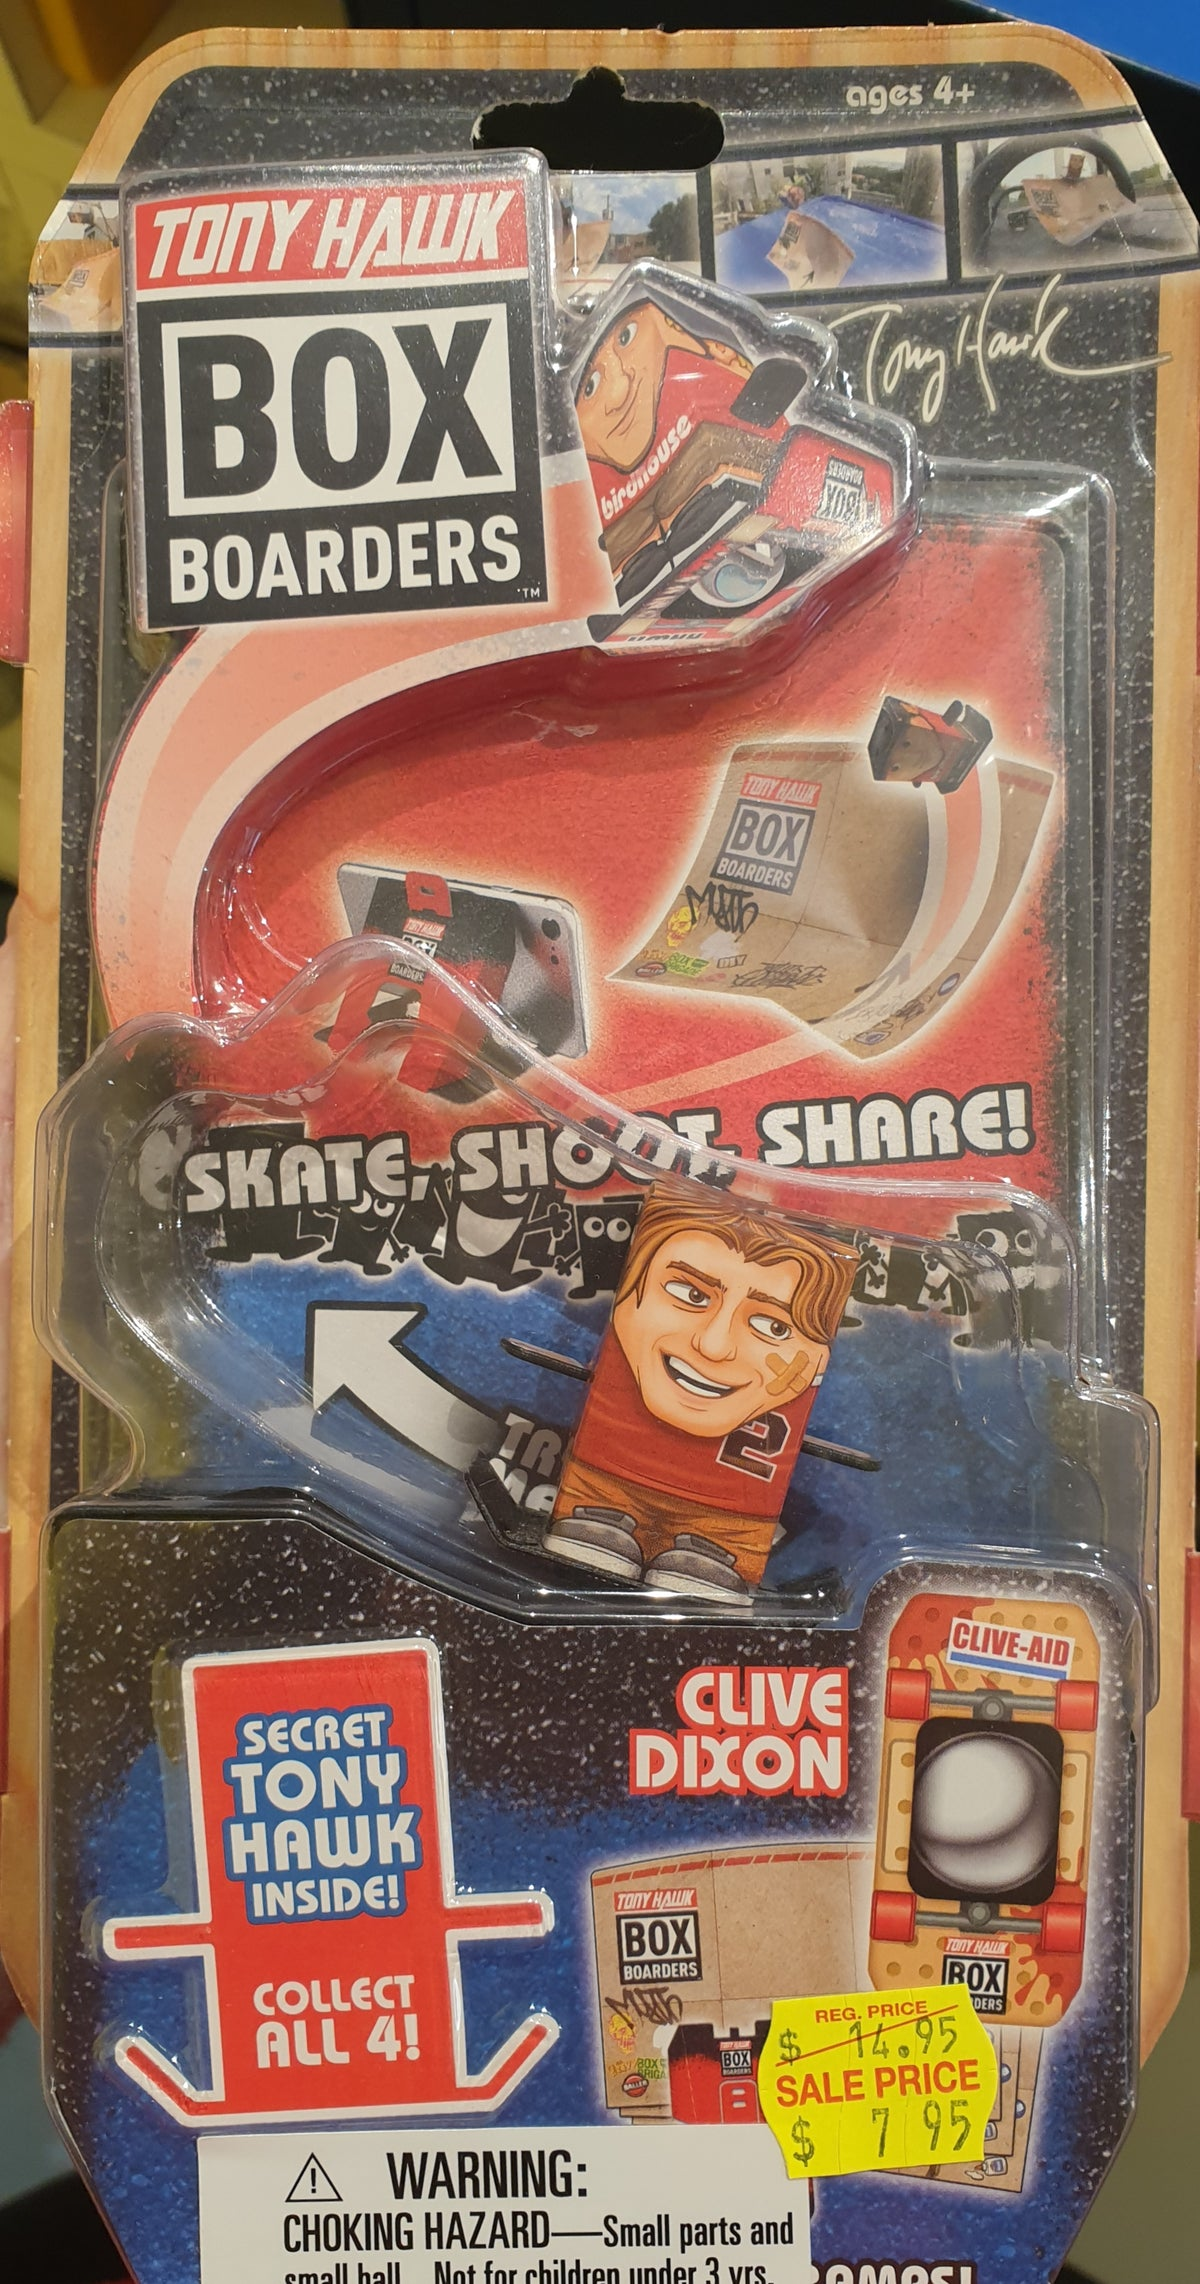 TONY HAWK BOX BOARDERS - ACTION PACK